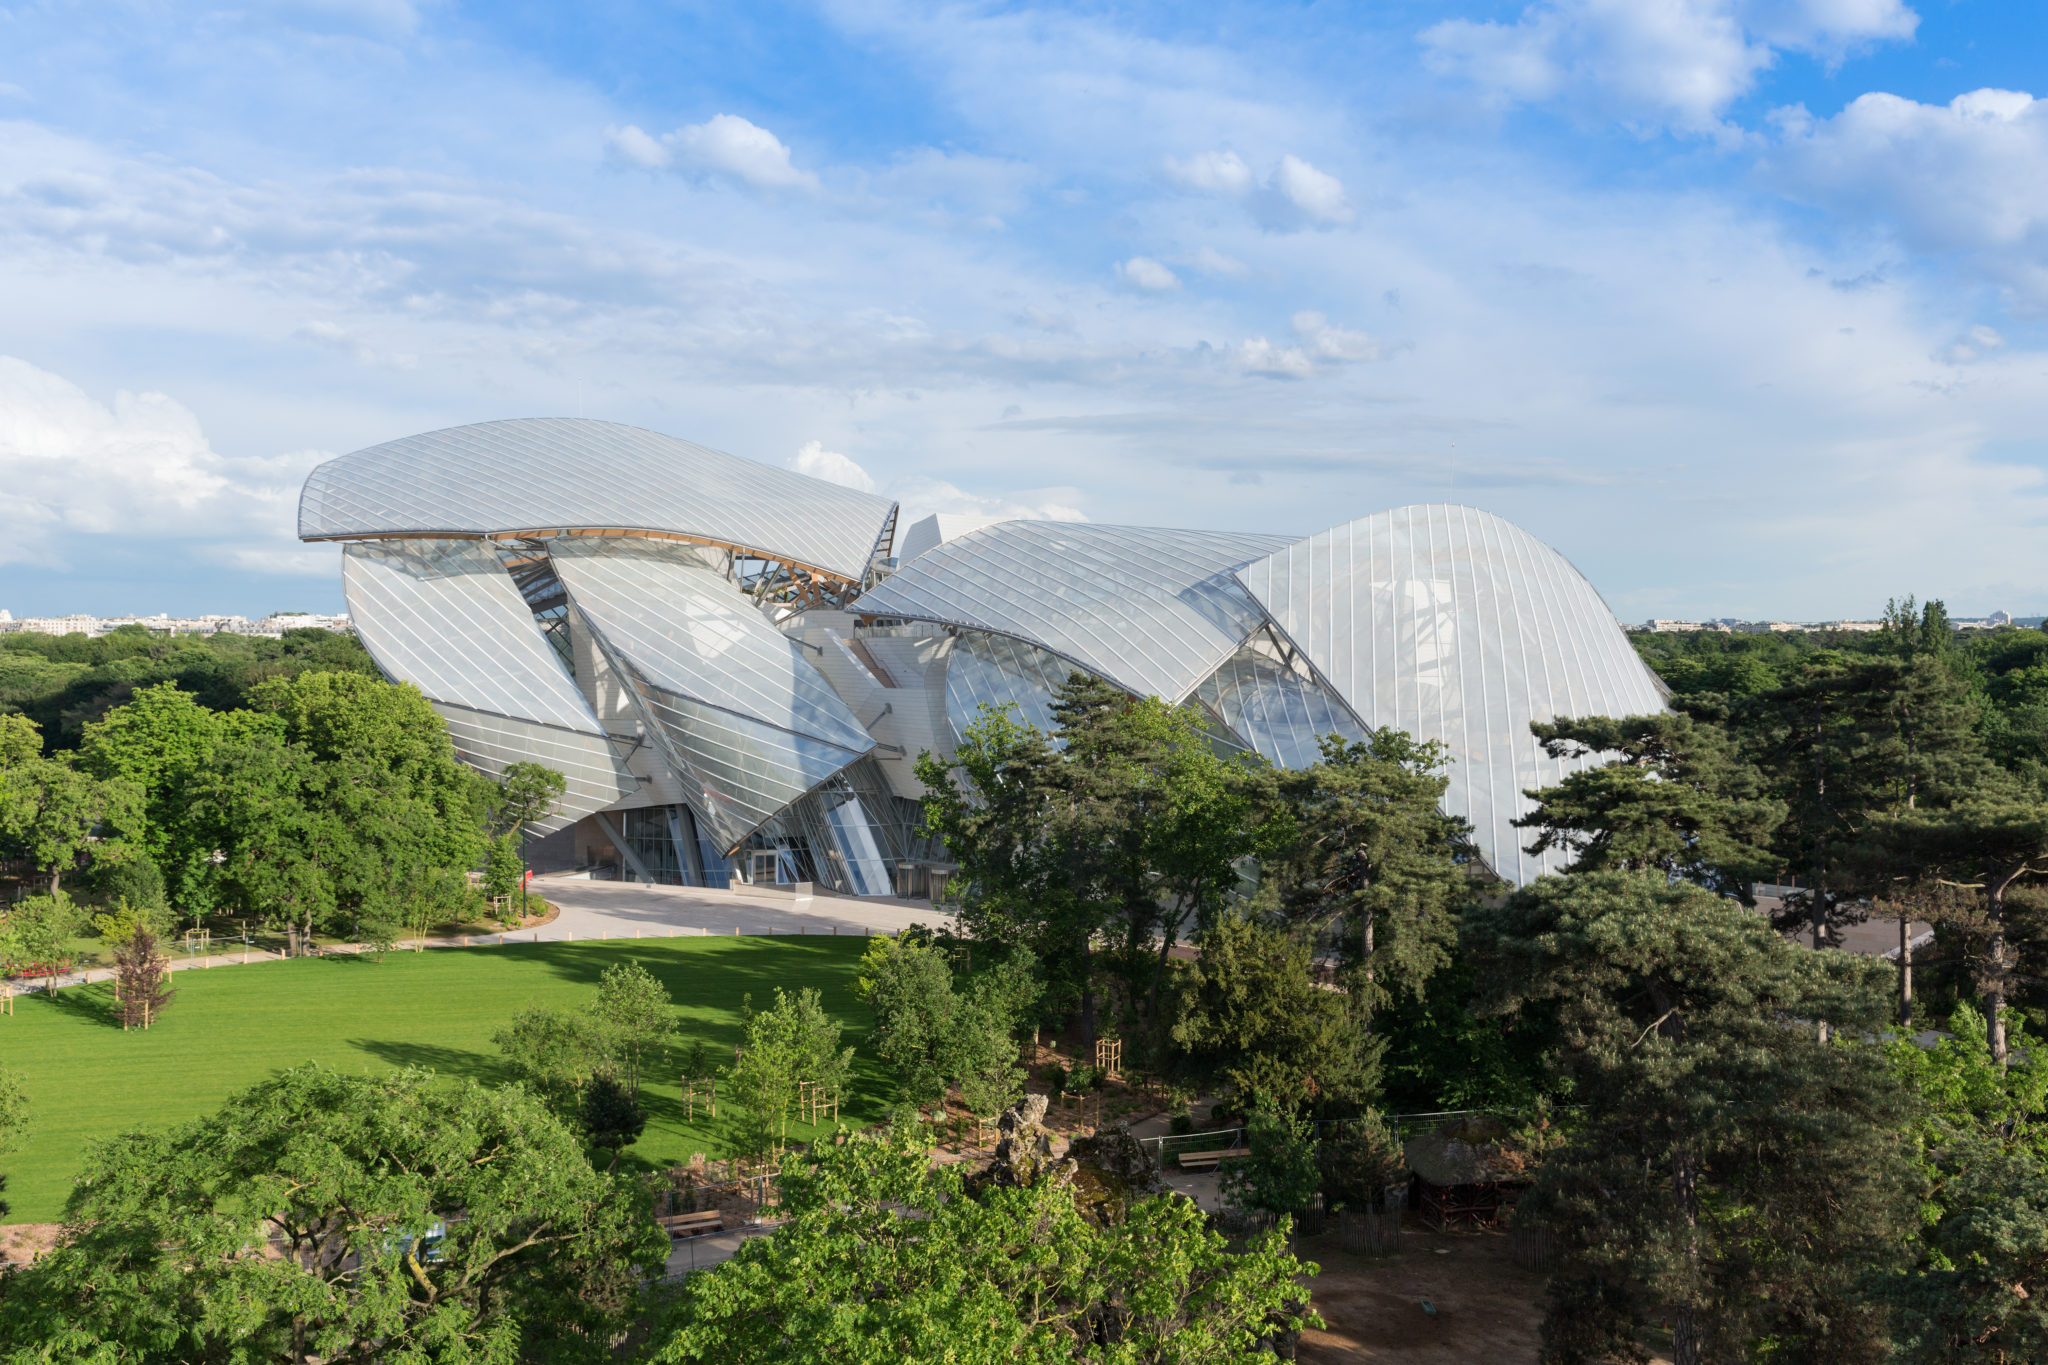 Iwan Baan - Fondation Louis Vuitton